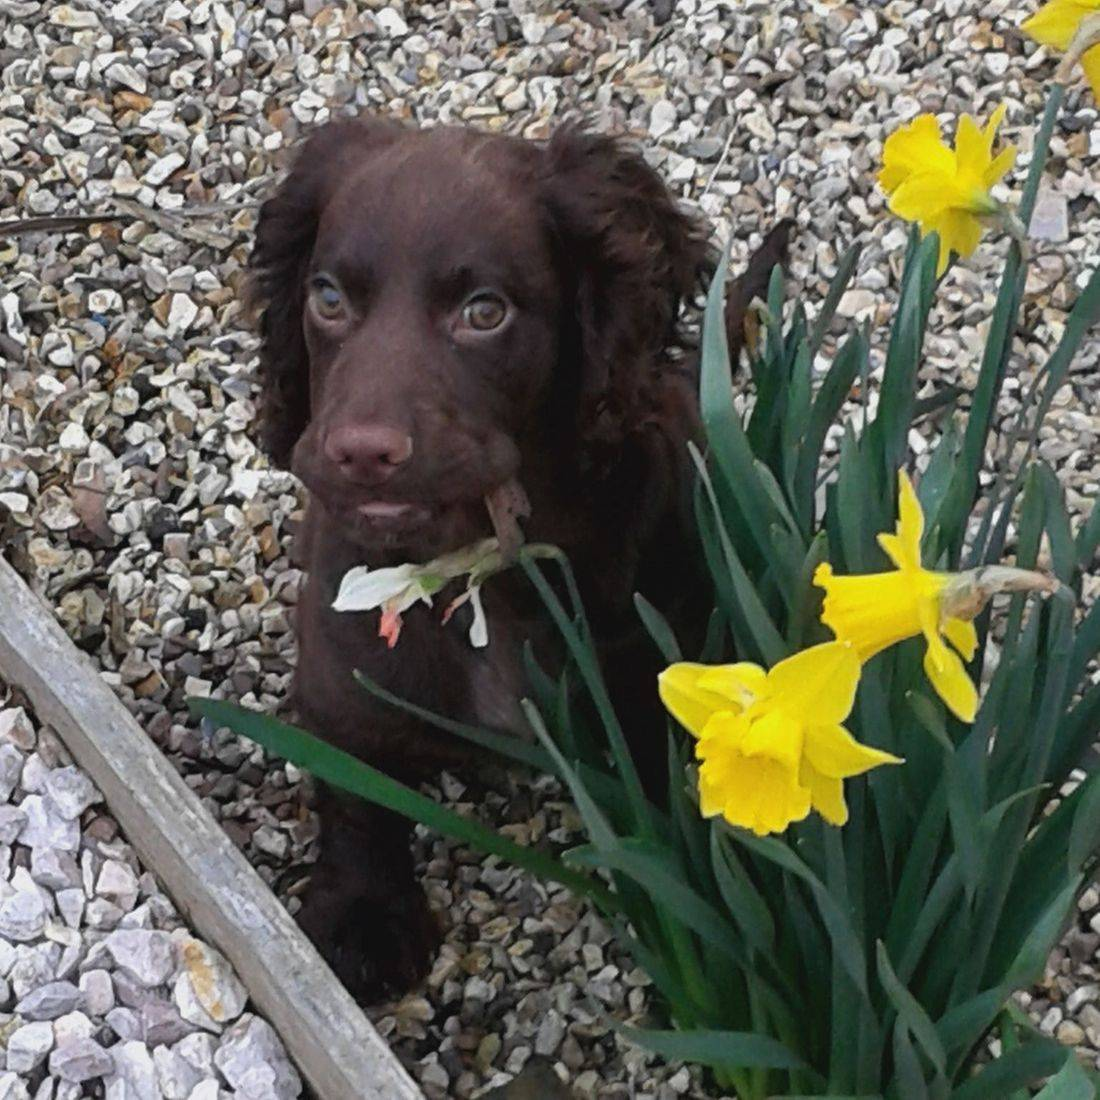 Brown Cocker Spaniel puppy in the daffodils